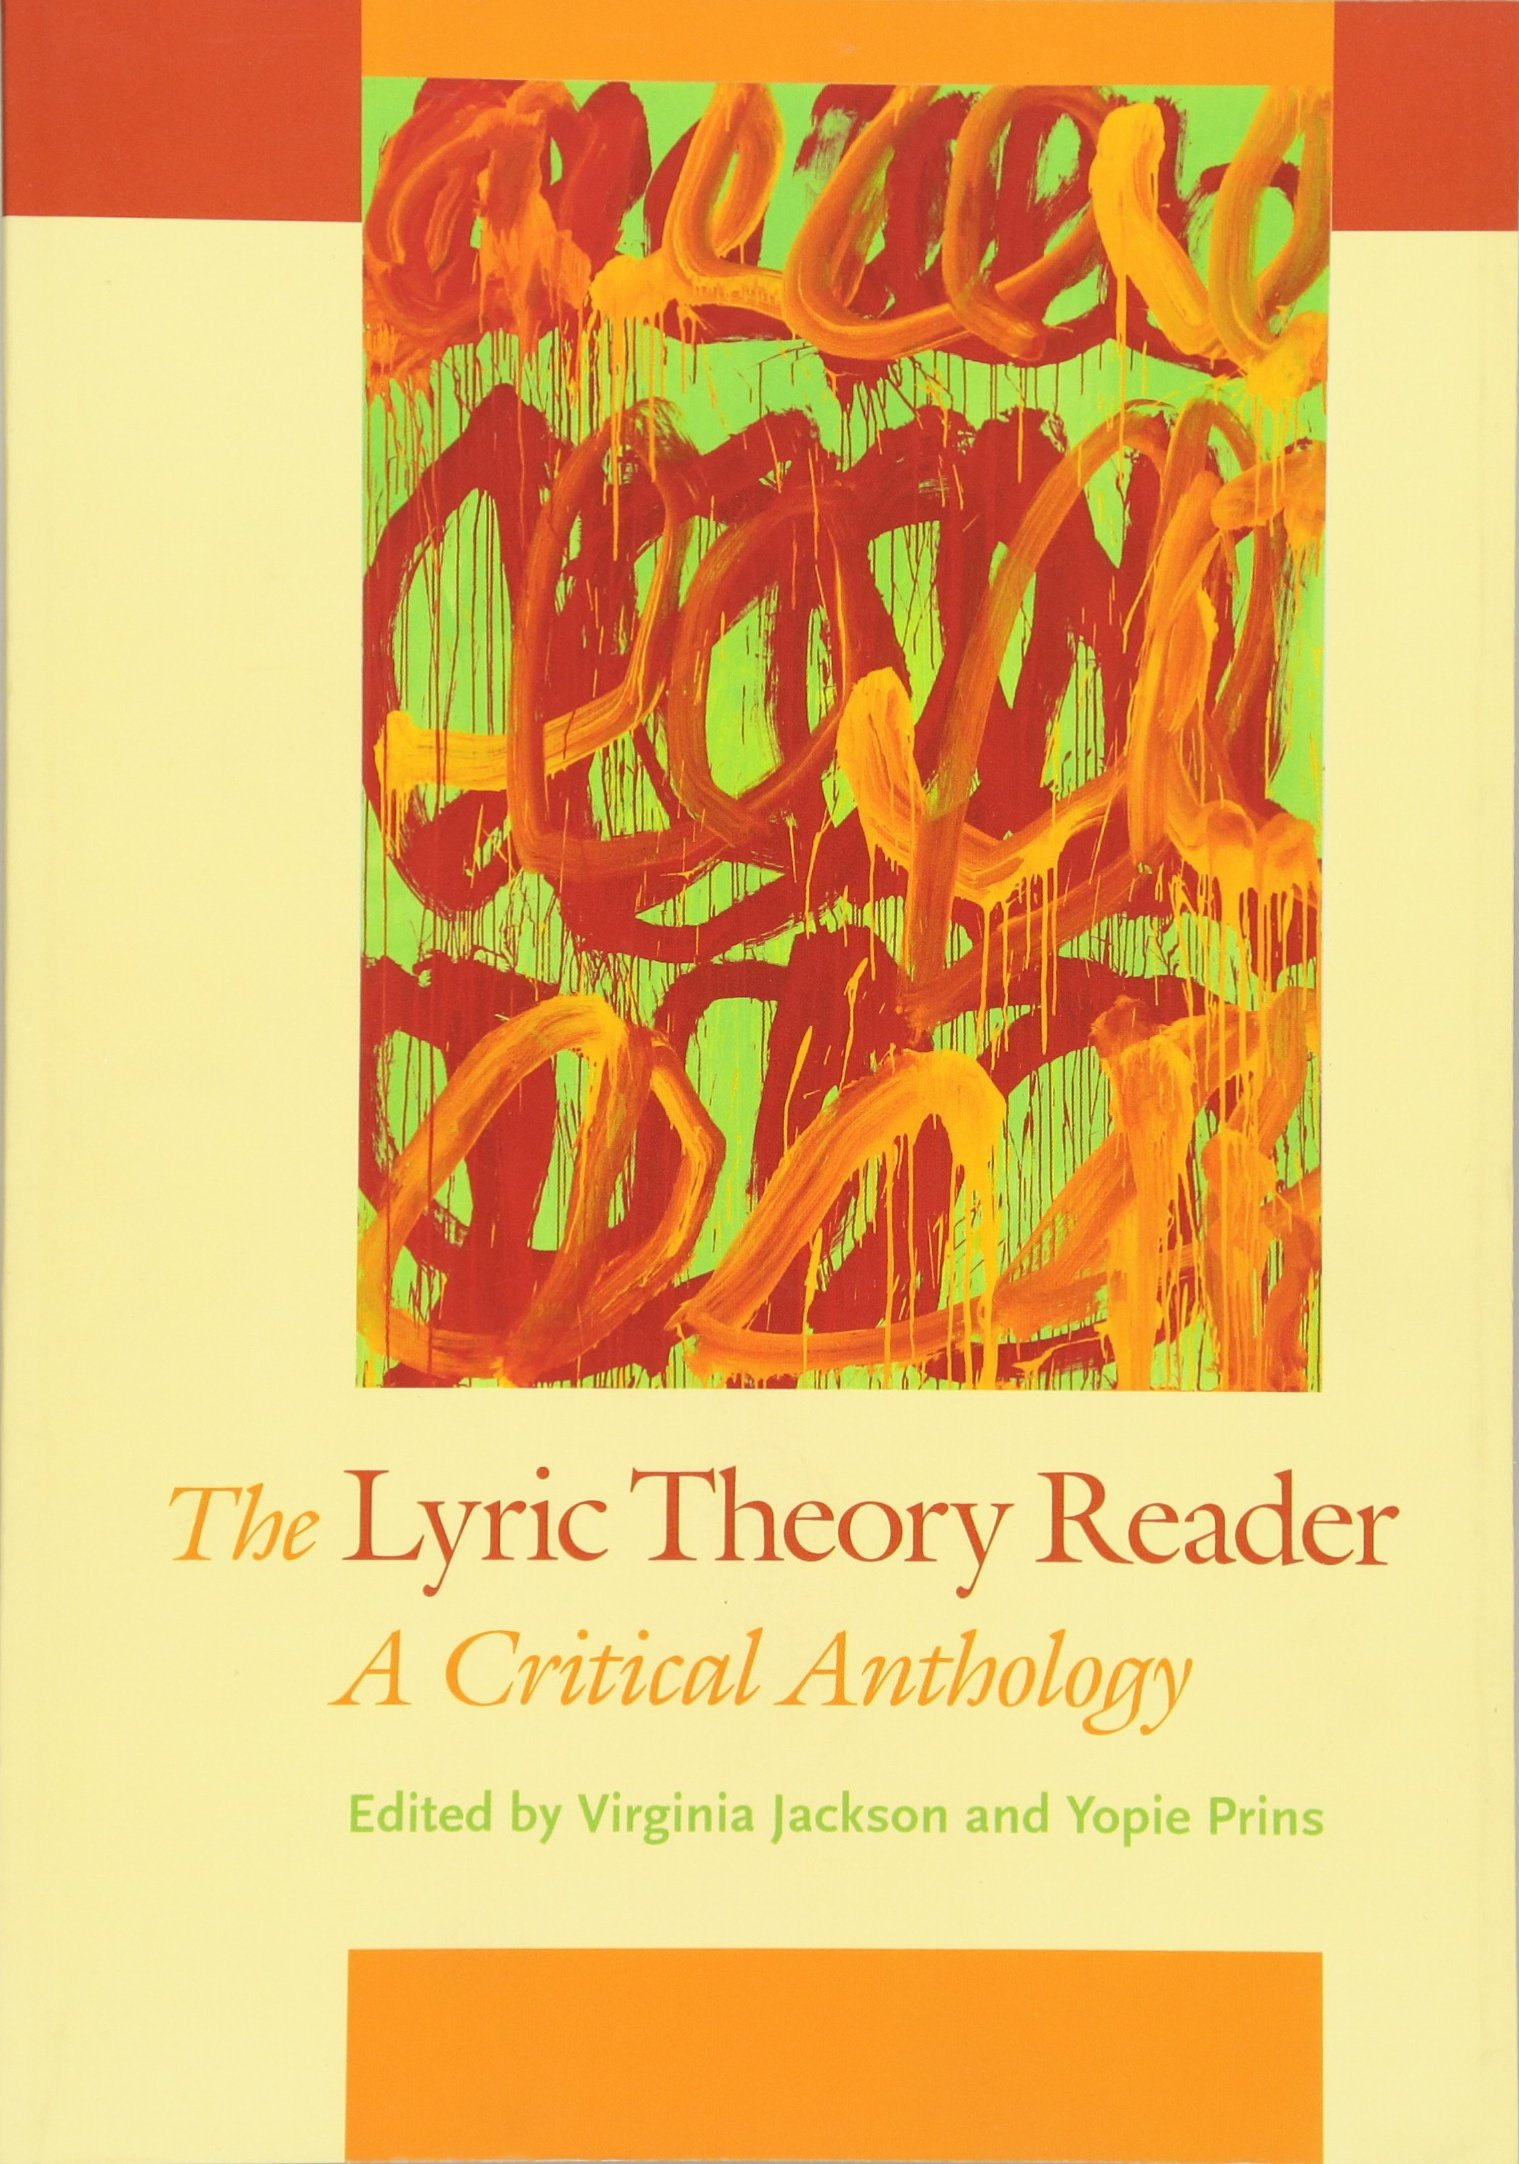 a8bf6b153eb07 The Lyric Theory Reader  A Critical Anthology Paperback – January 23